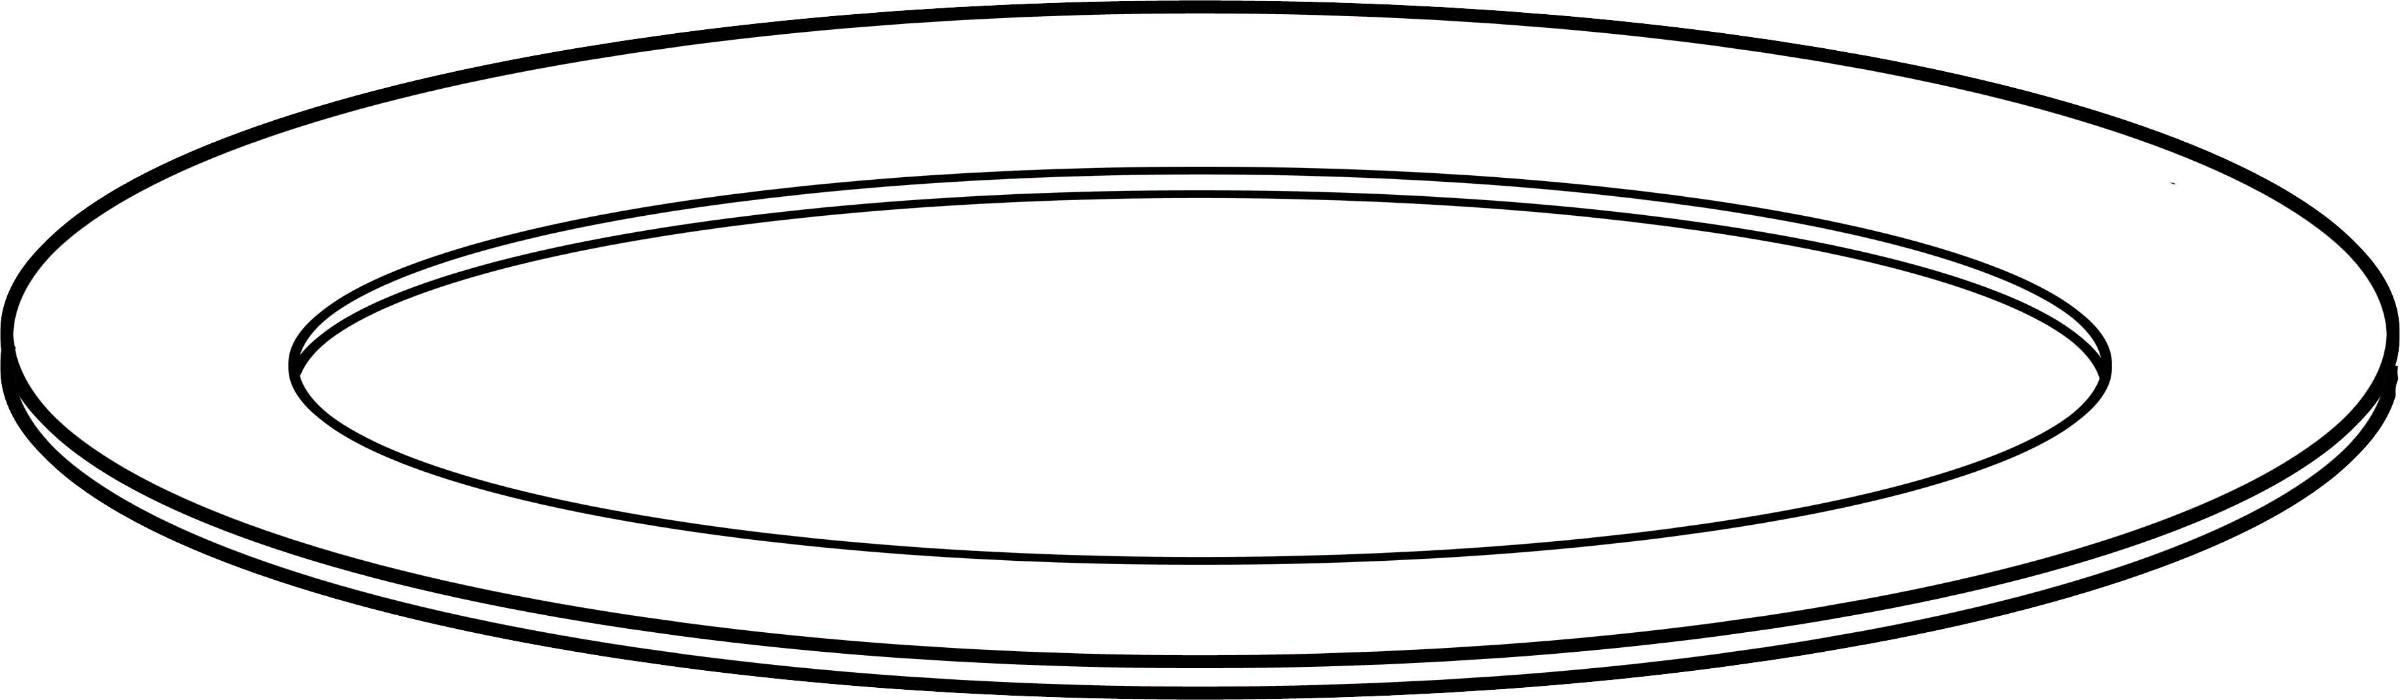 Plate Clipart Outline.